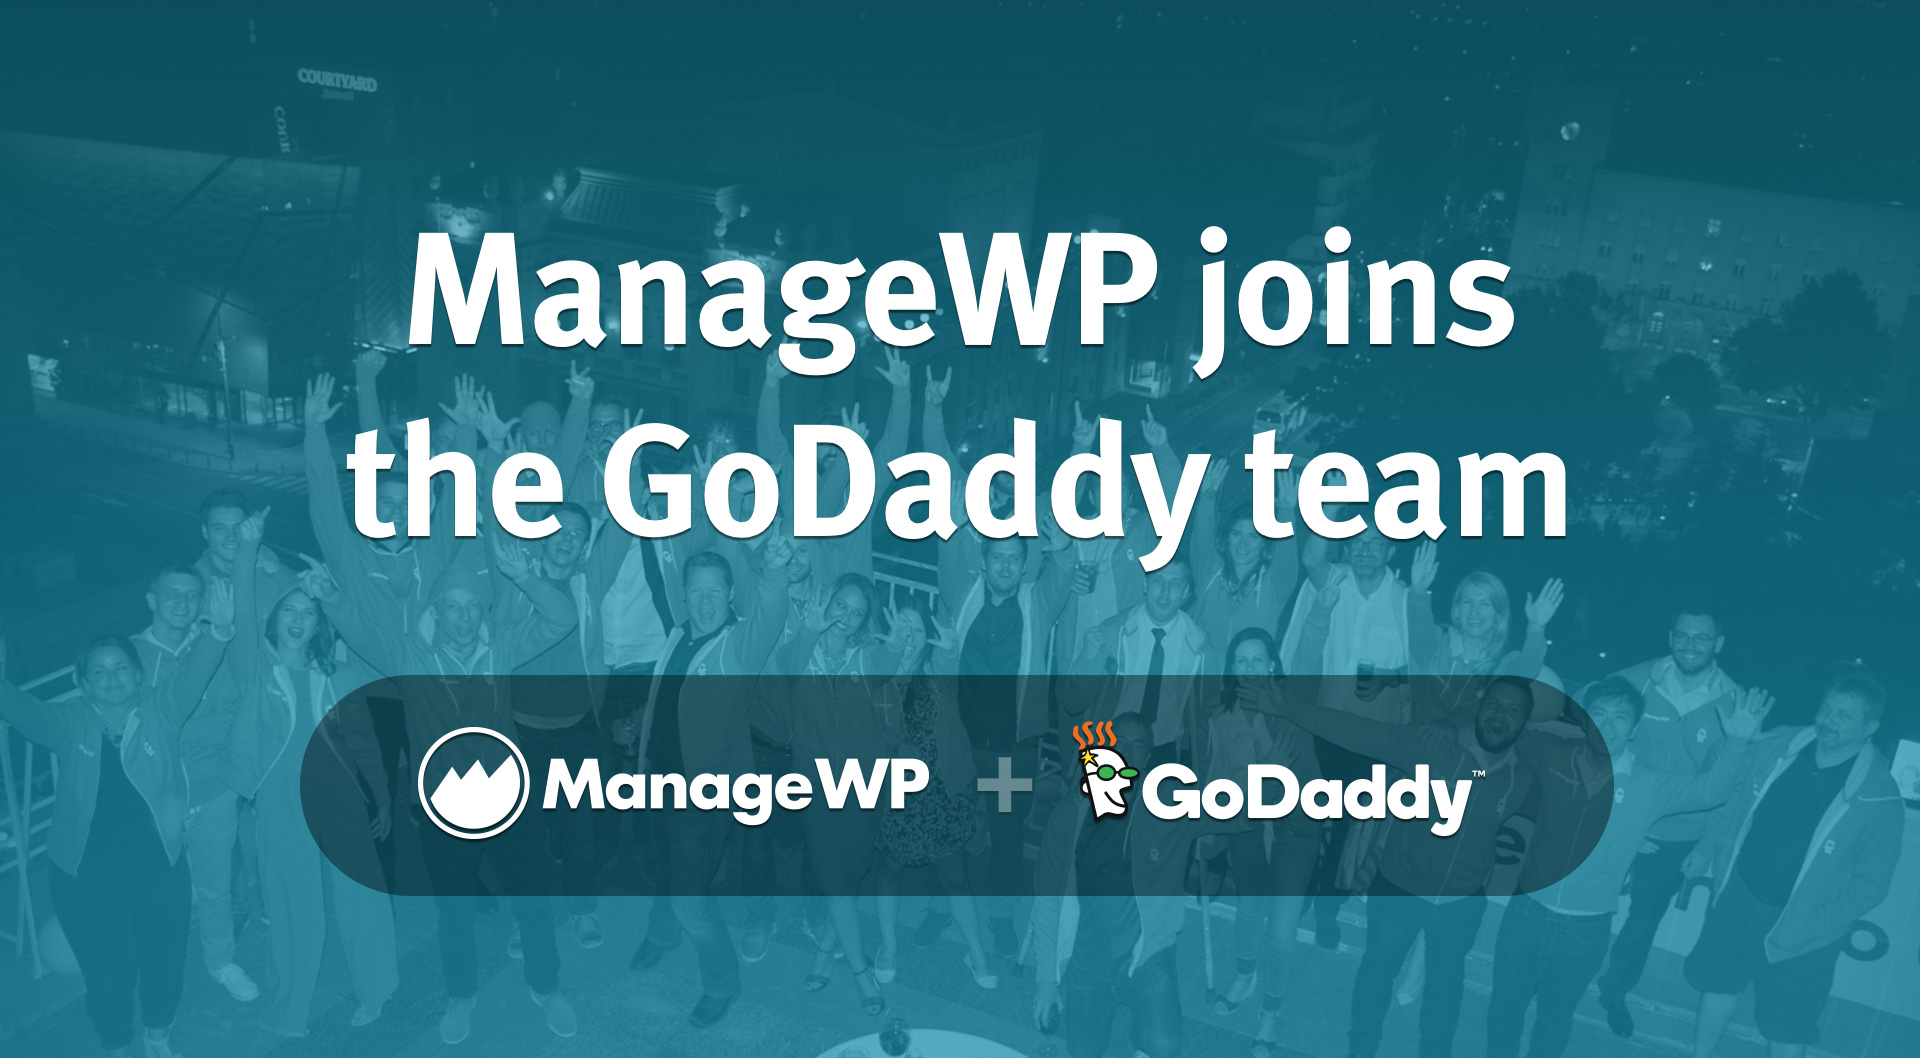 ManageWP Joins GoDaddy - ManageWP